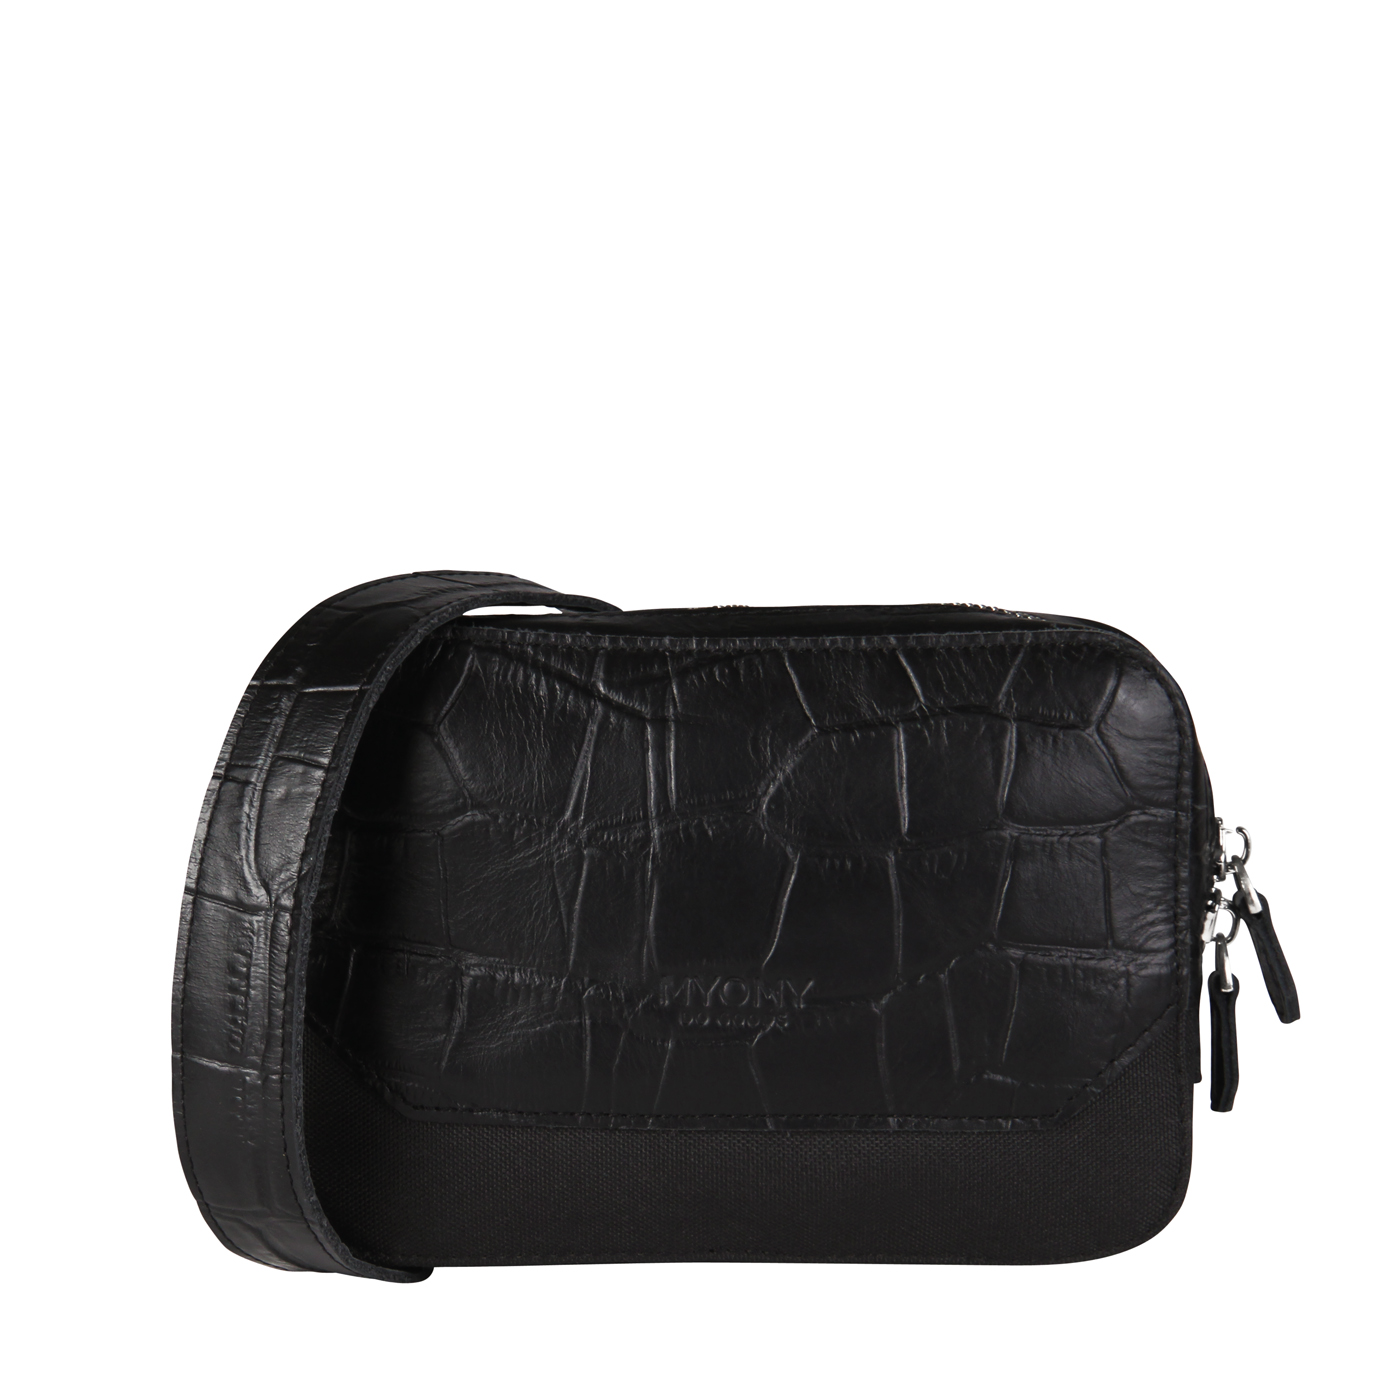 MY TREASURE BAG Beltbag – croco black & recycled plastic